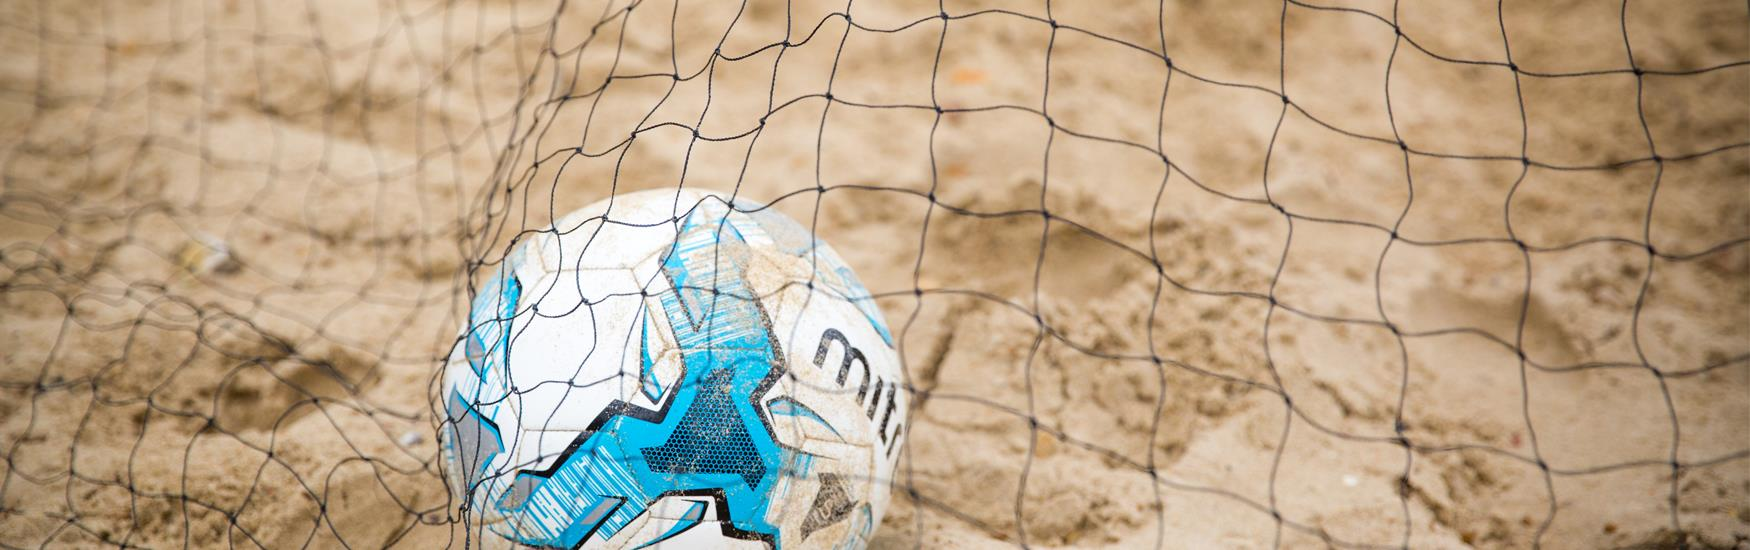 Football in net on Bournemouth Beach